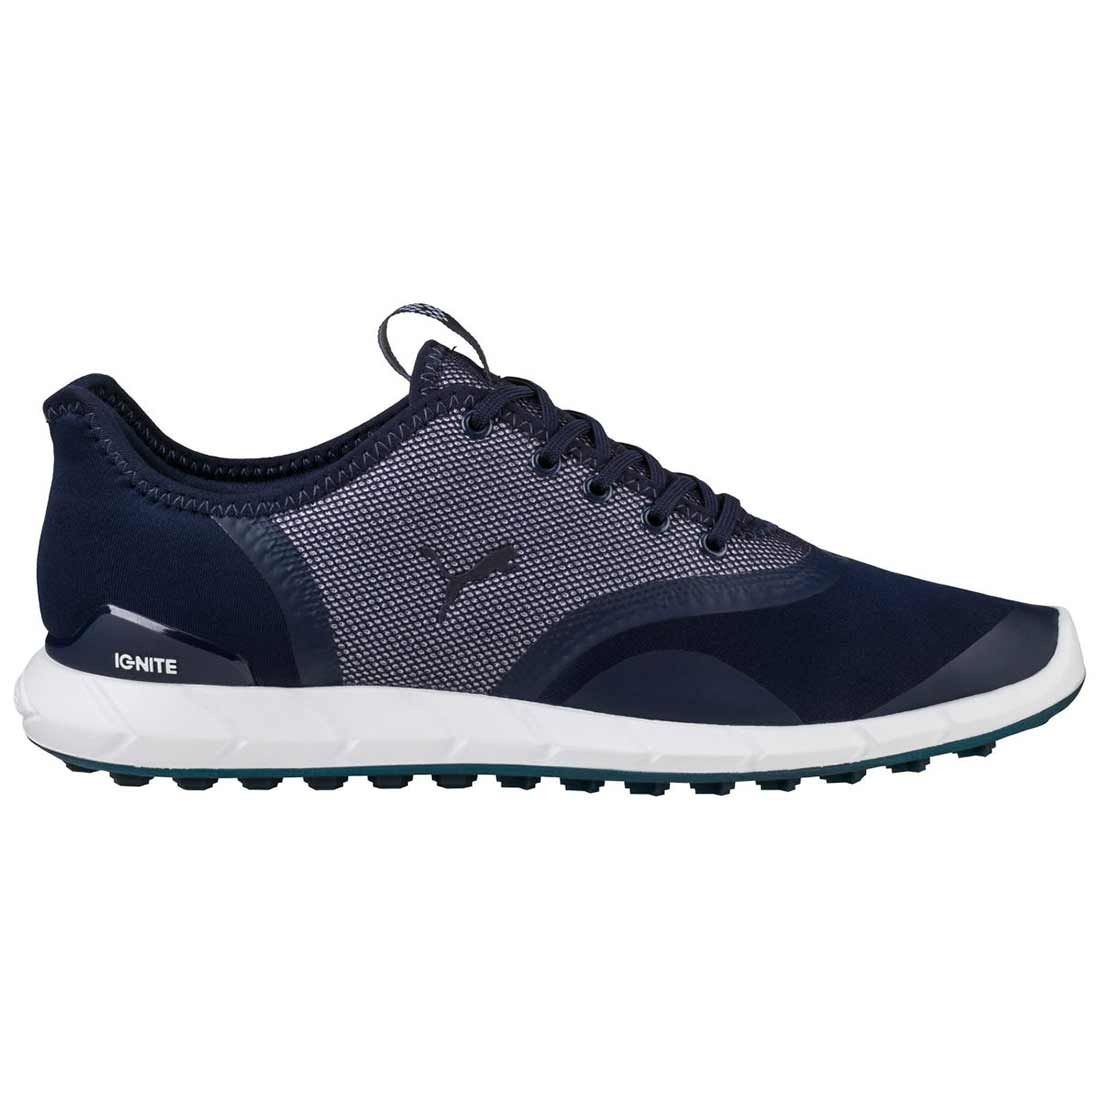 Ignite Statement Low Golf Shoes Peacoat